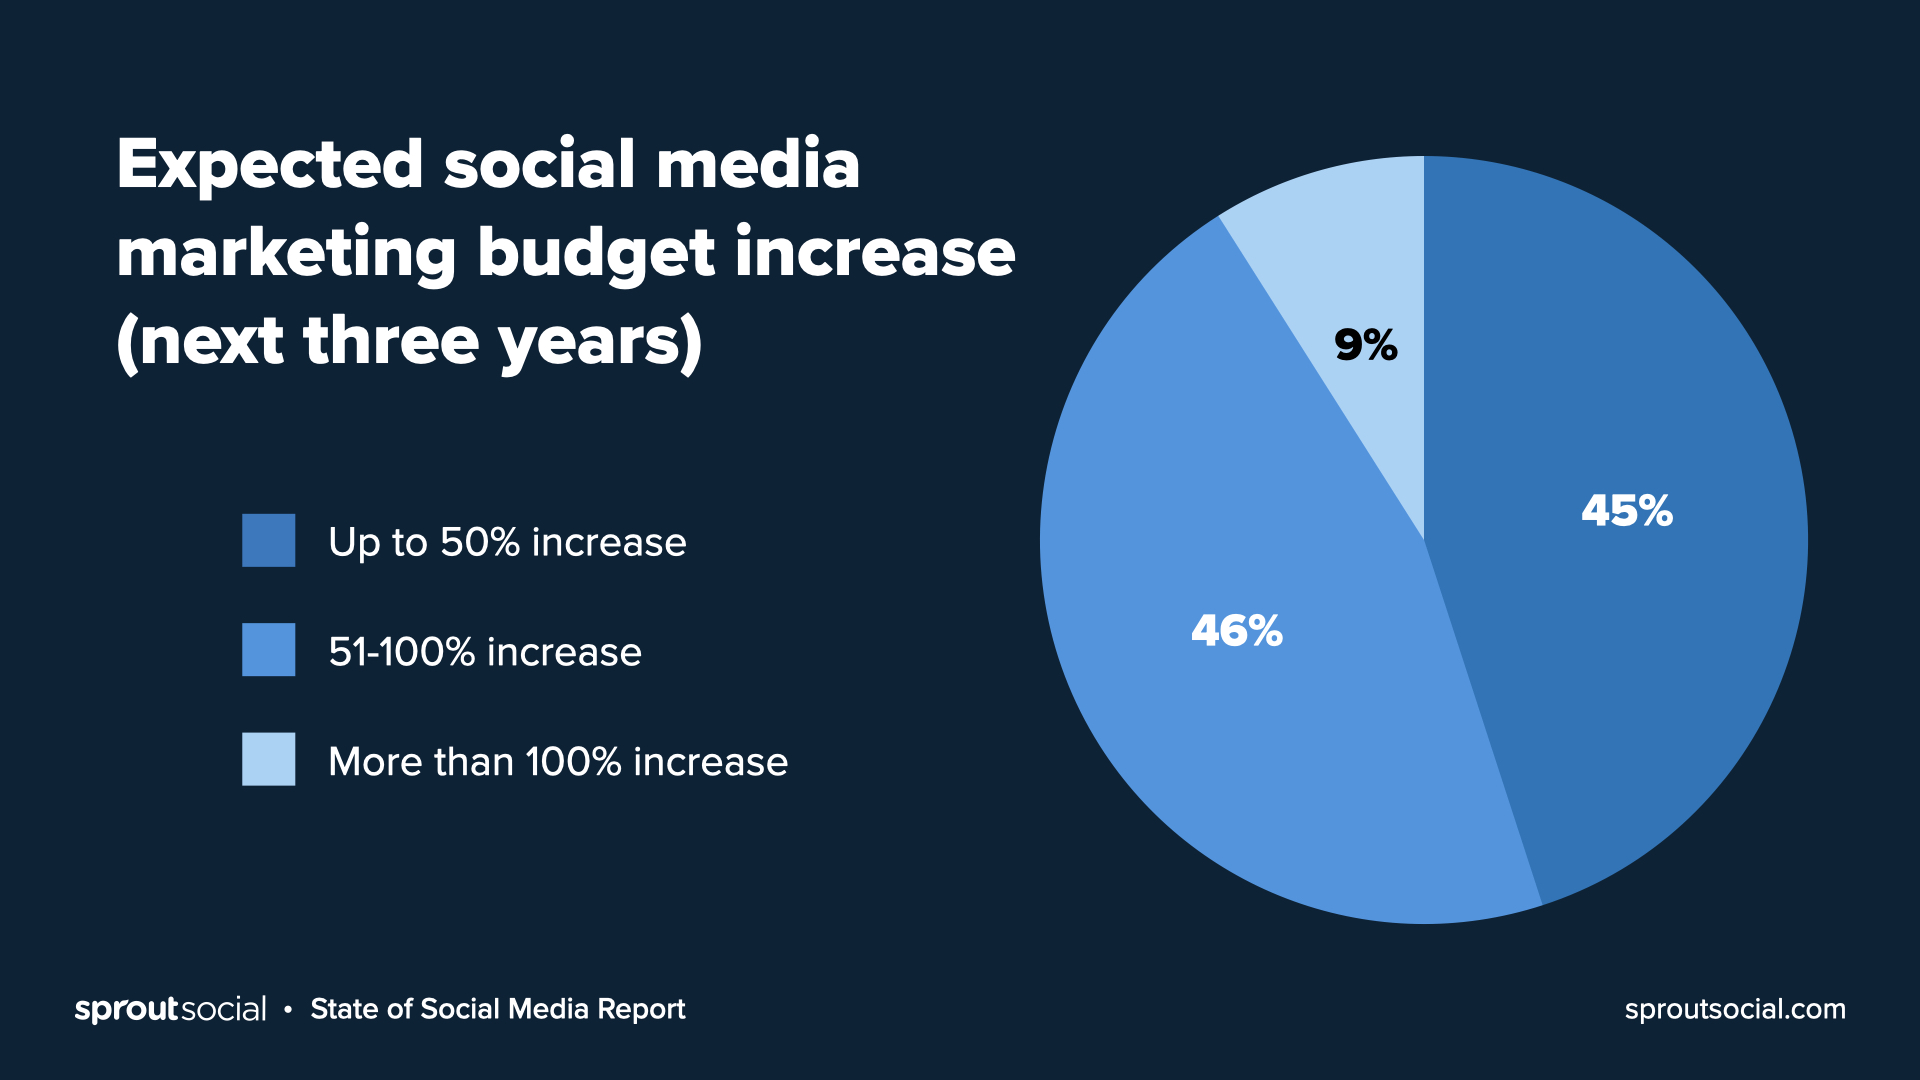 Expected shifts in social media budgets